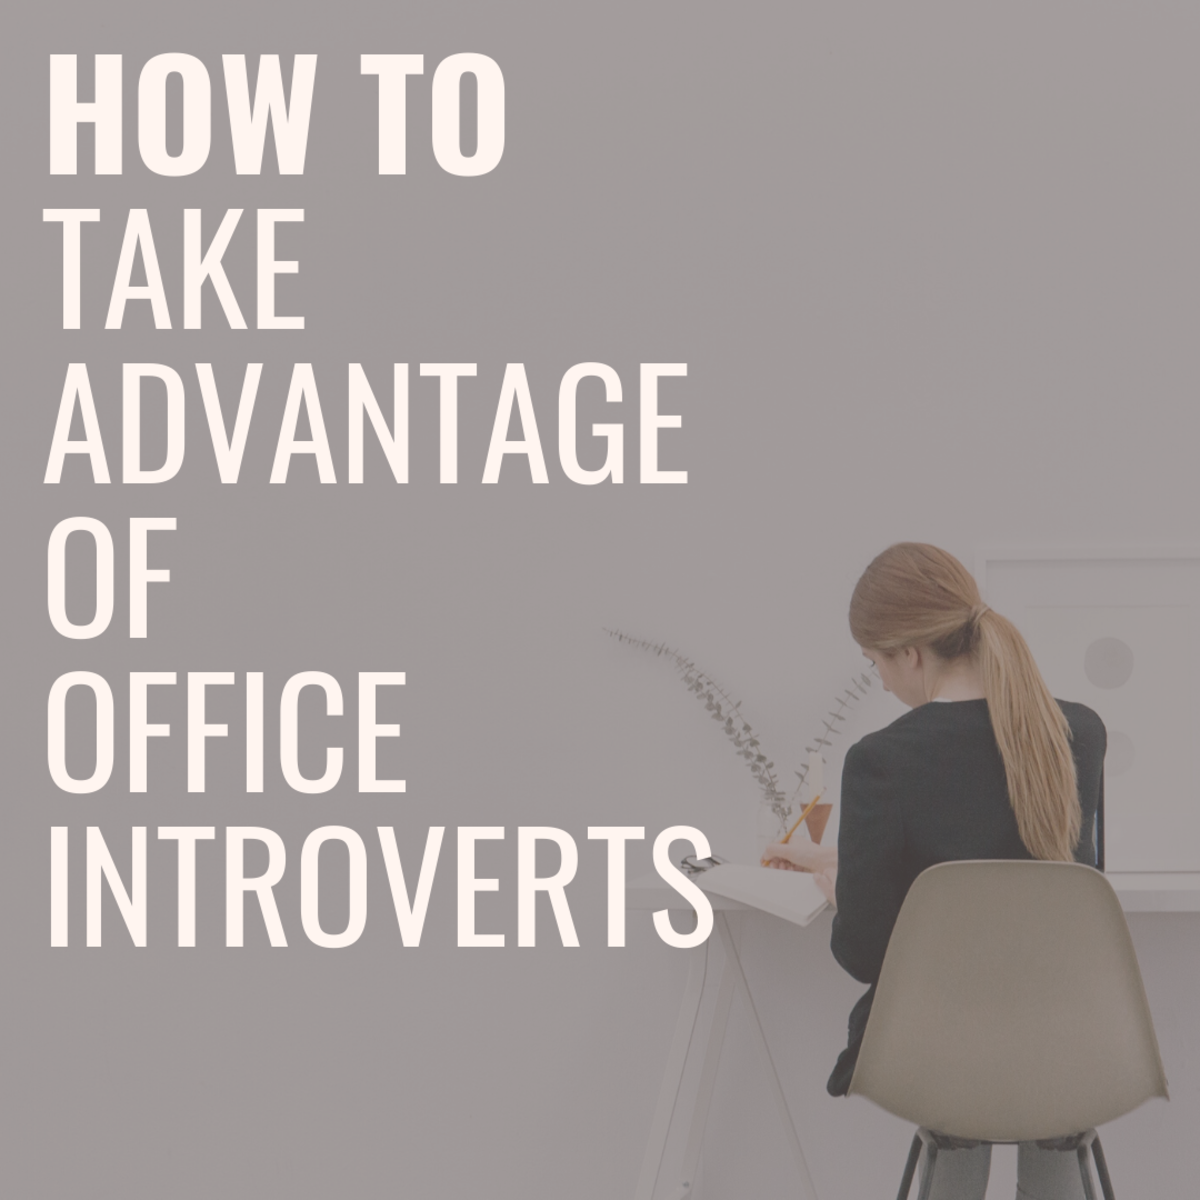 Introverts at Work: 9 Ways to Take Advantage of Office Introverts